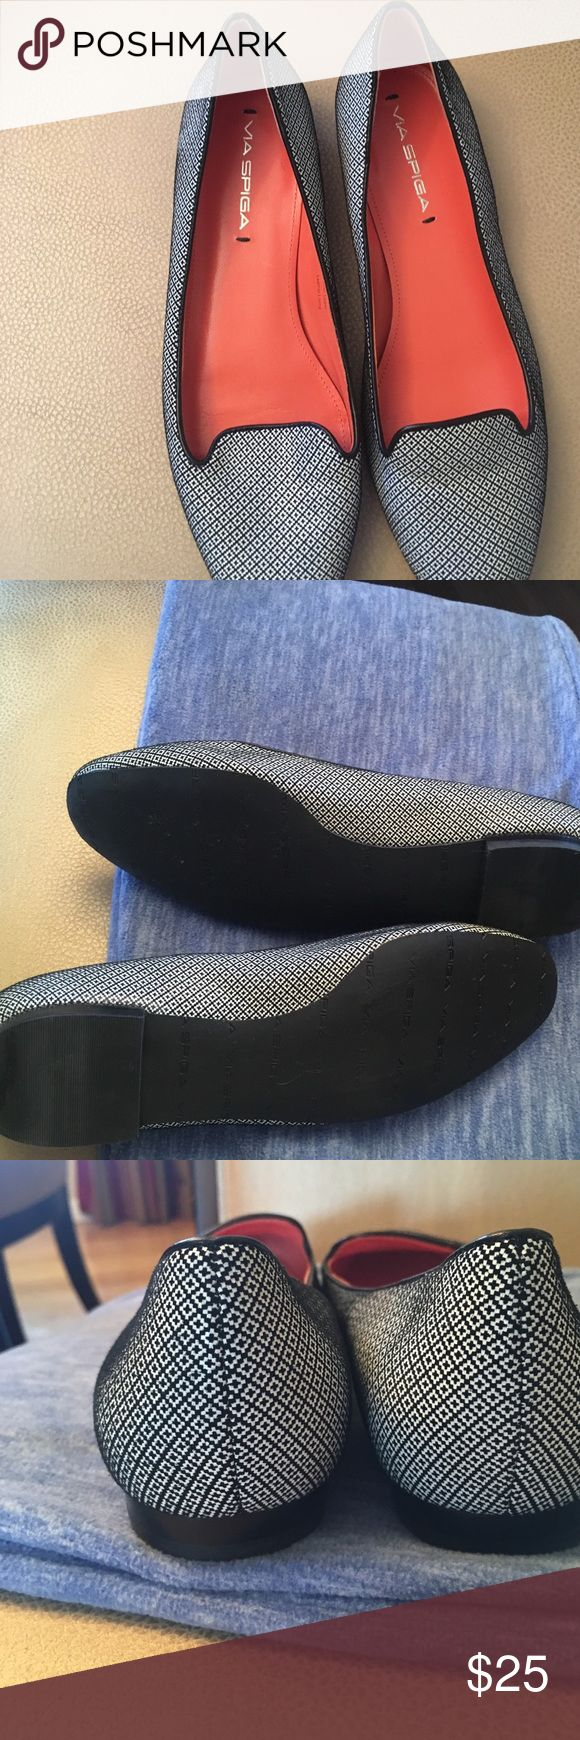 Via spiga shoes Navy blue and white flats. In great condition, like new. Via Spiga Shoes Flats & Loafers